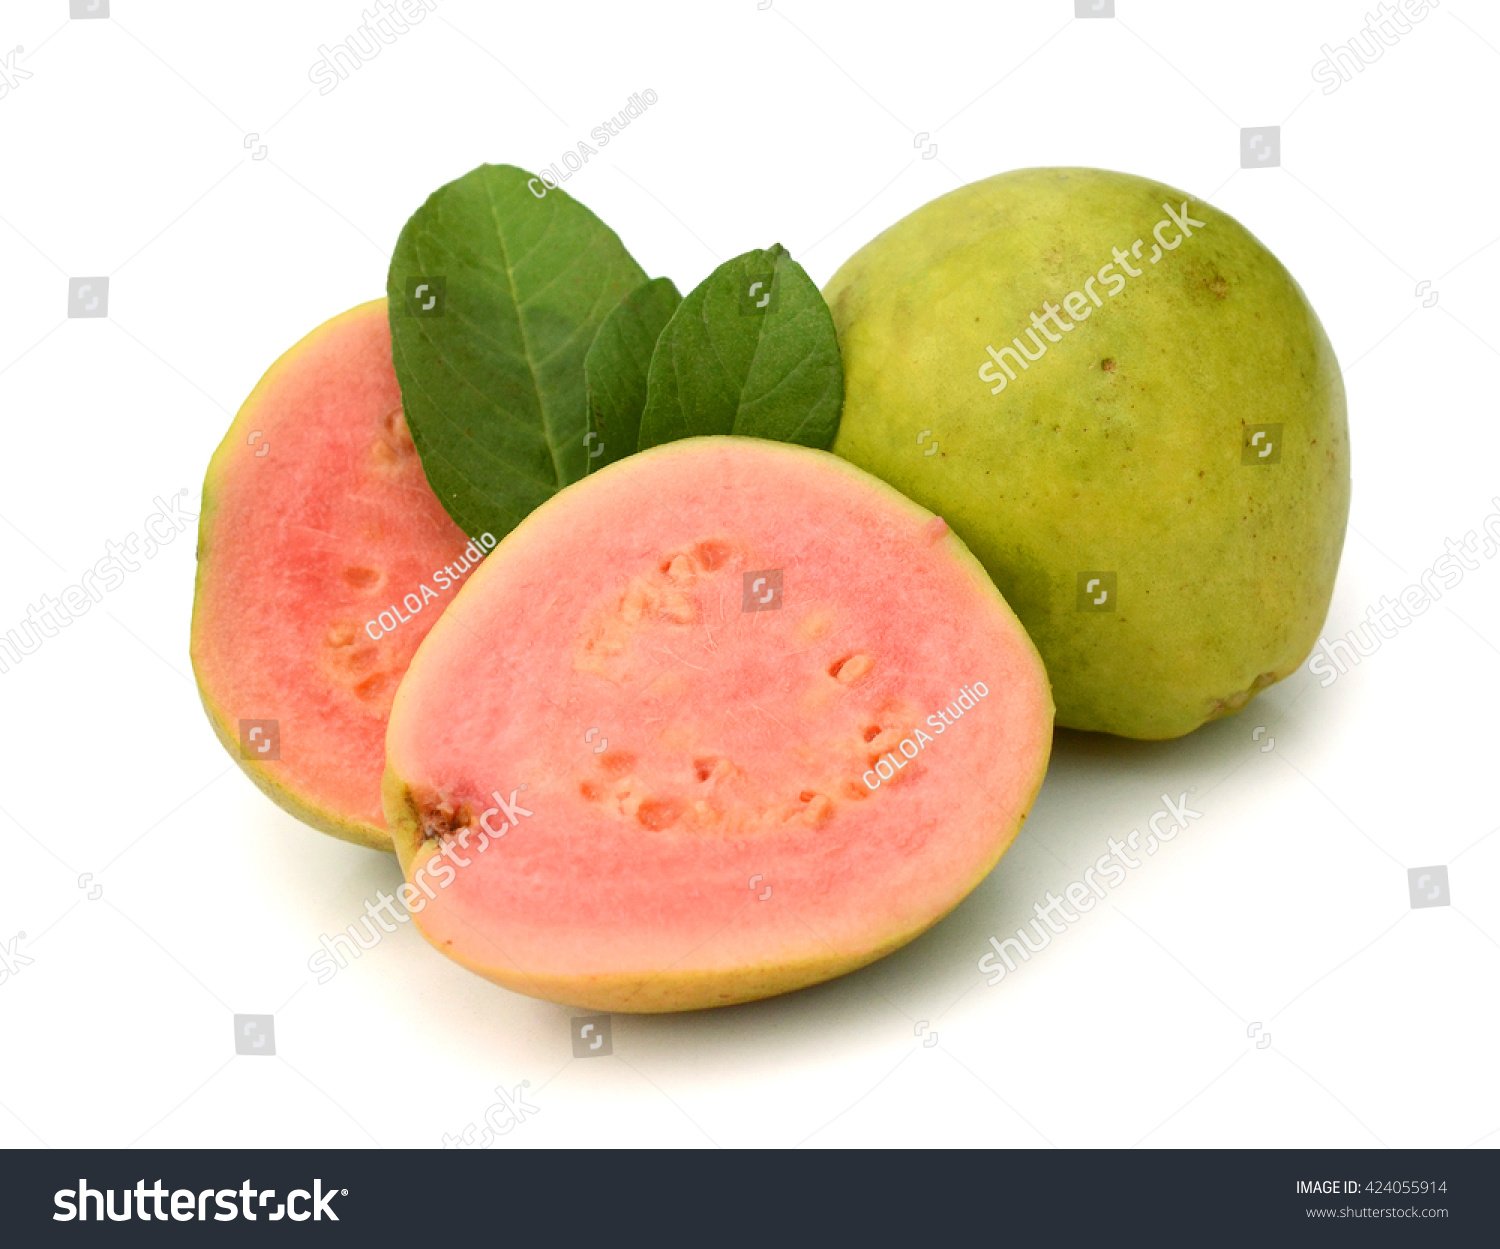 Guava Ripe Fruit Yellow Sweet With Small Hard Seeds Inside